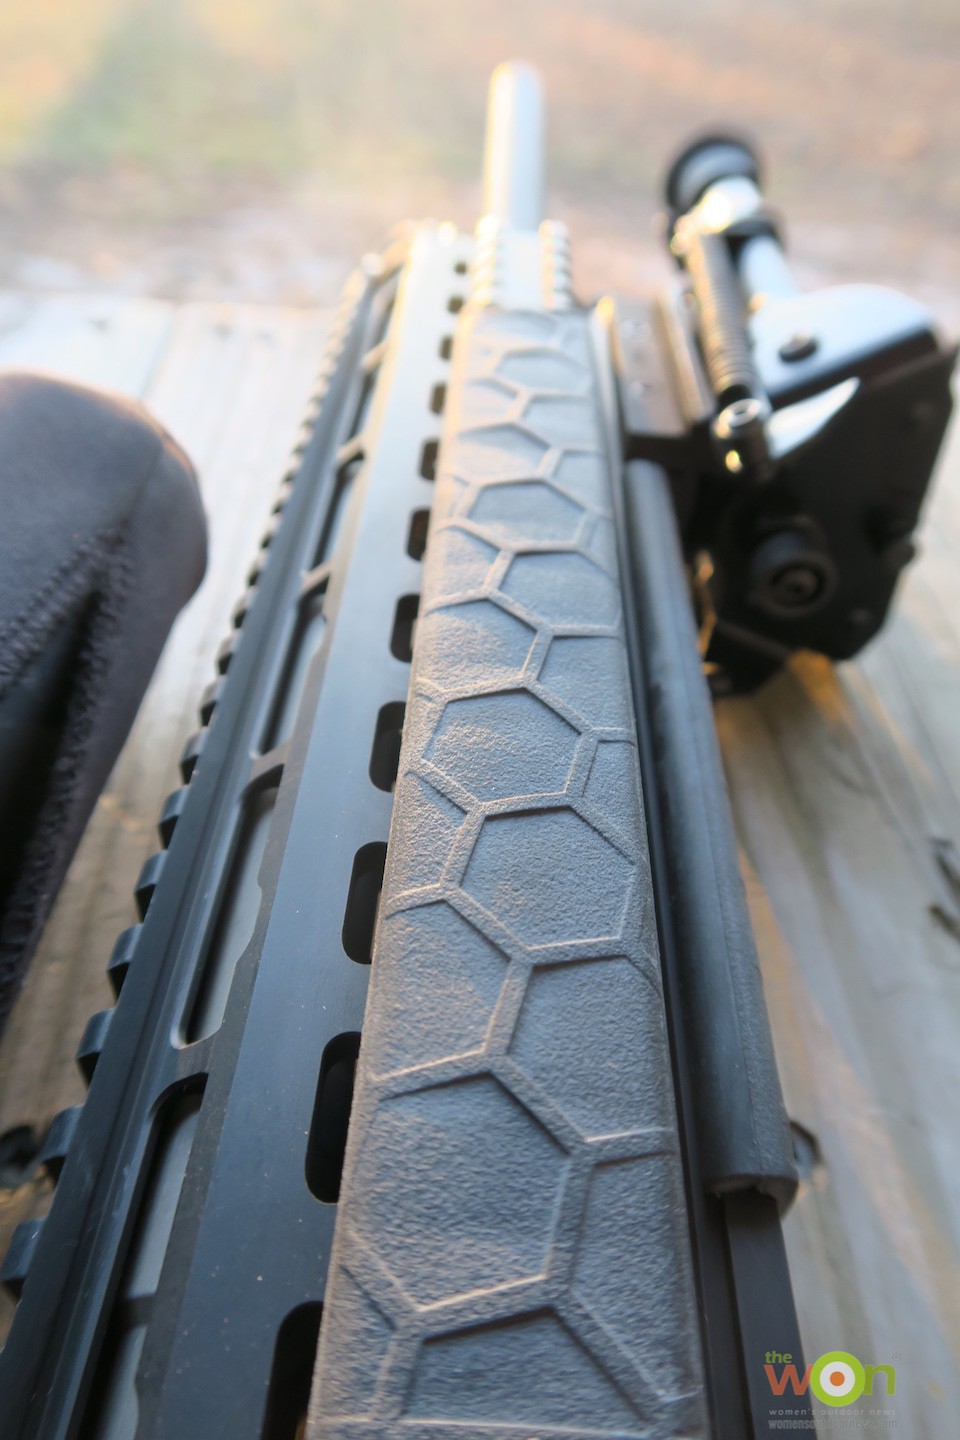 HexMag rail covers